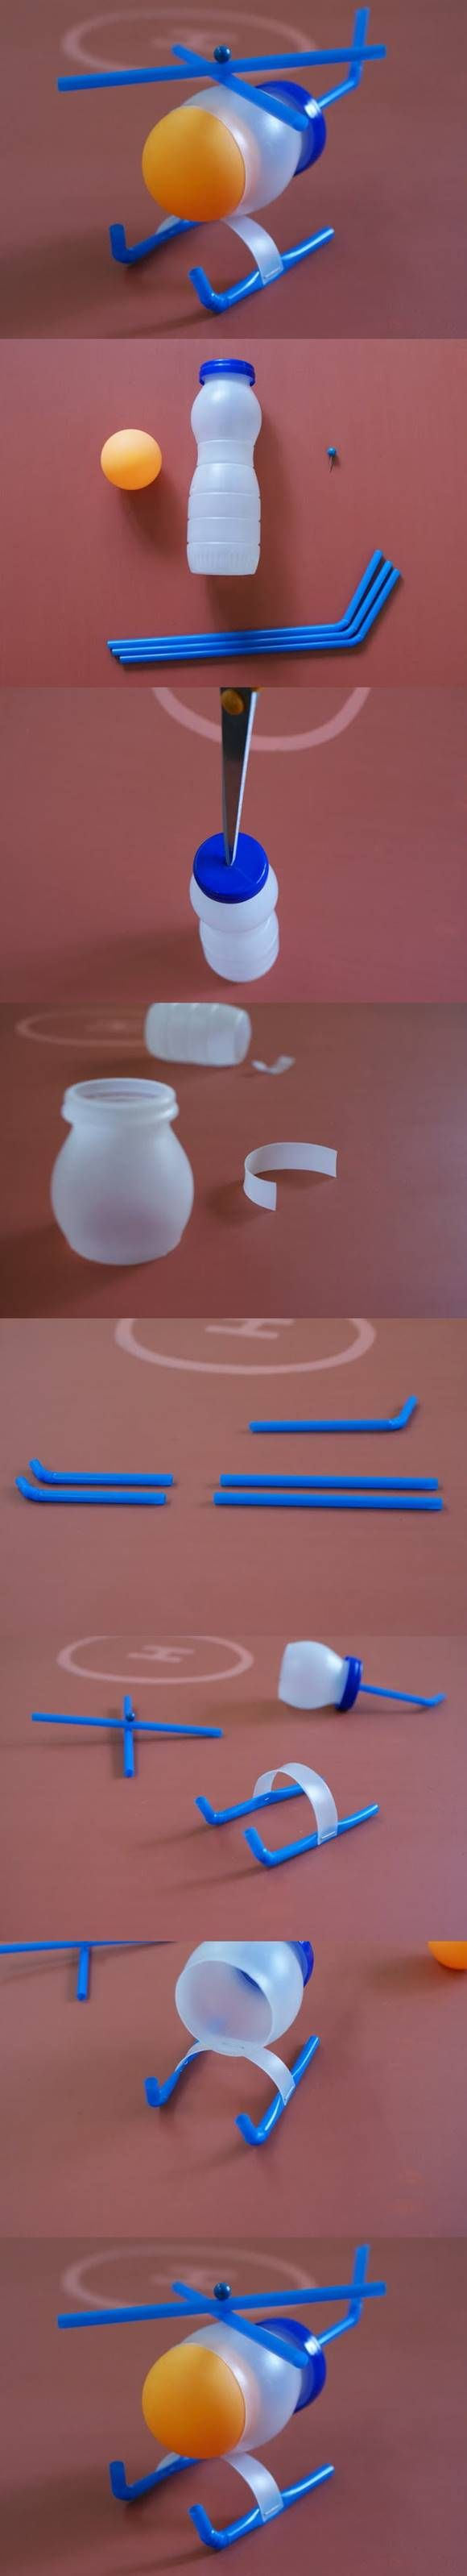 How to diy plastic bottle toy helicopter see best ideas for Things to make with plastic bottles for kids